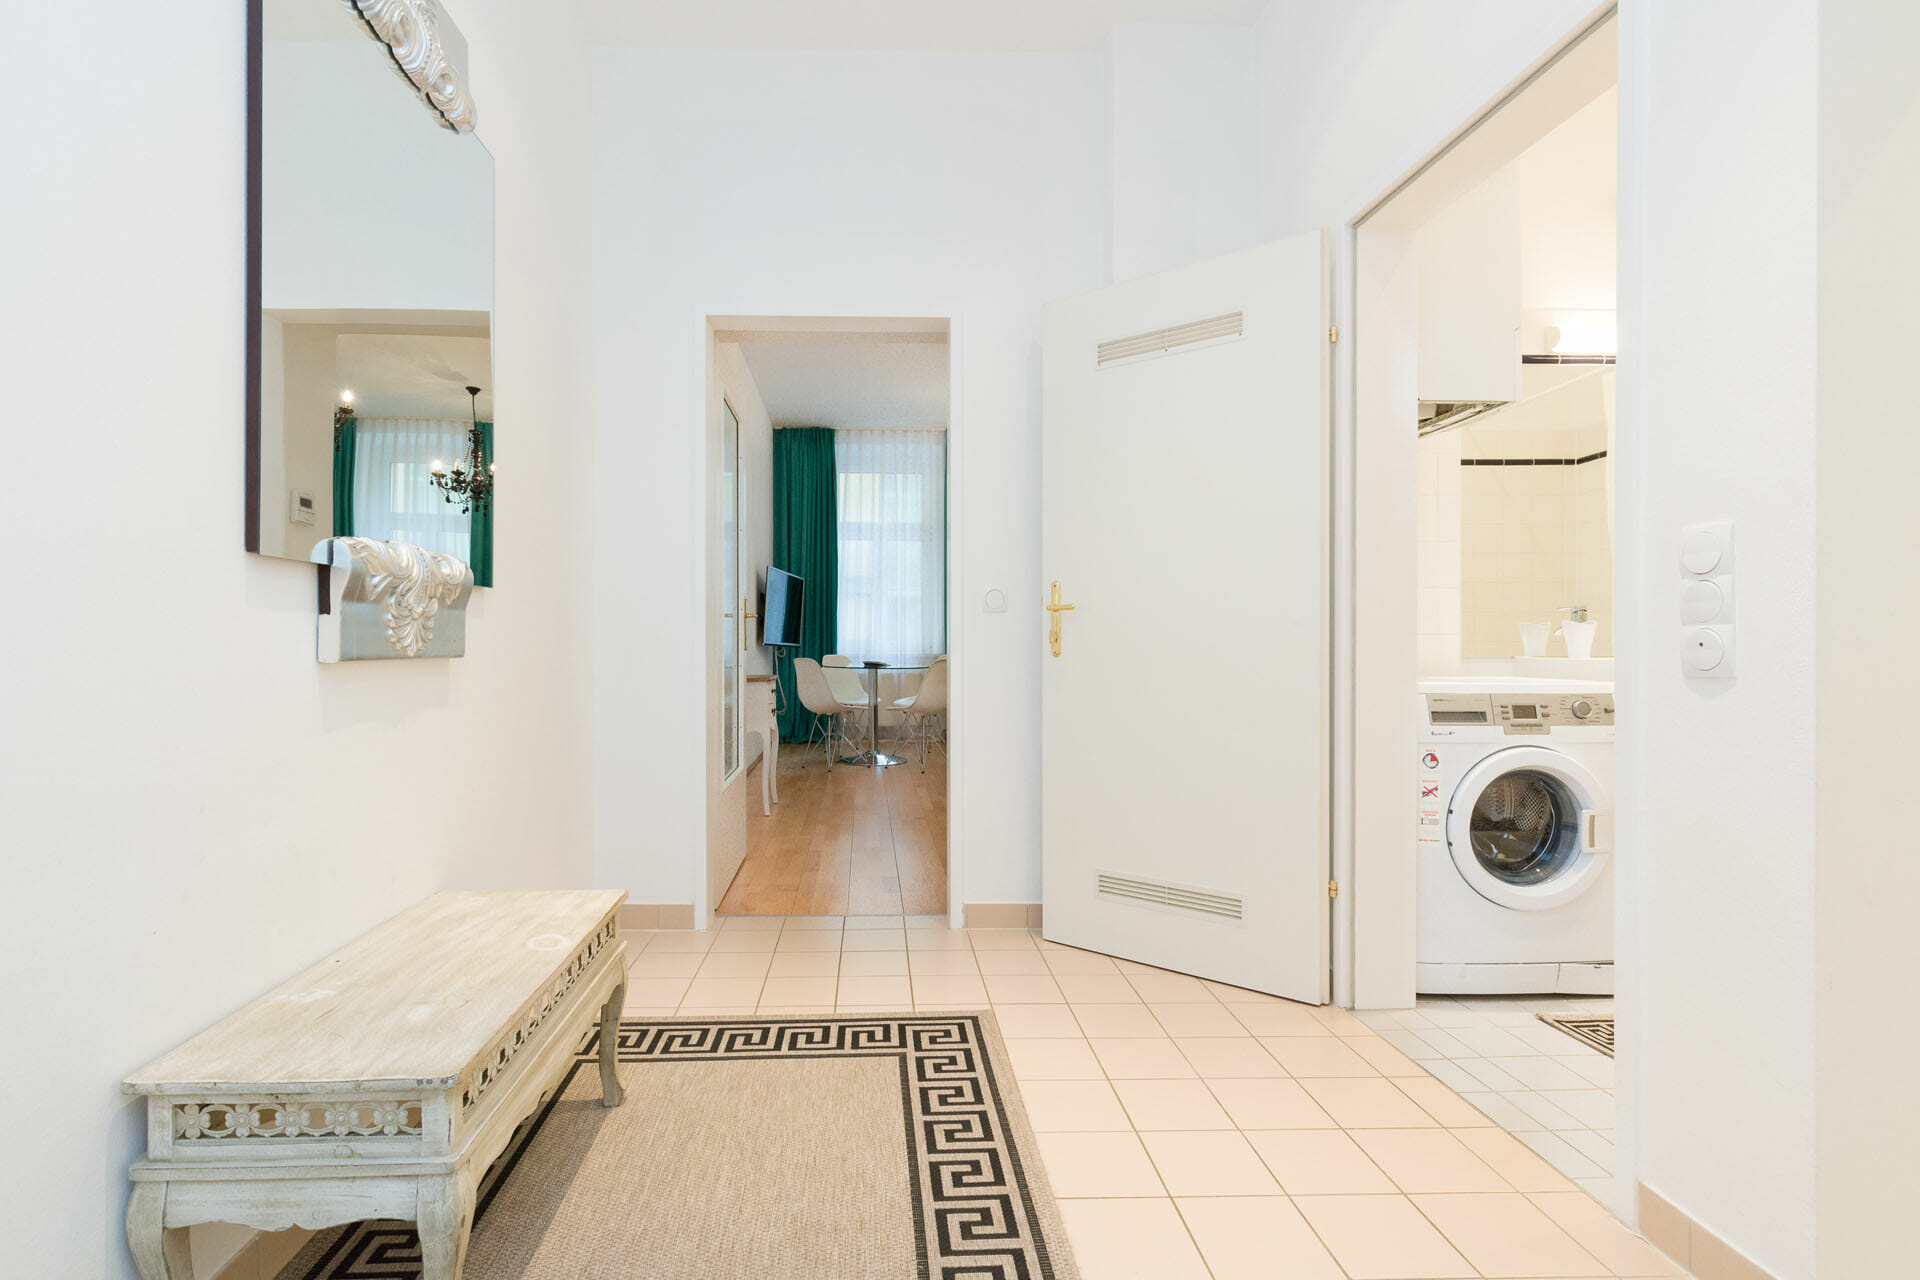 Apartments in Vienna Austria. Alser Strasse 14. Cosy studio apartment.Premium Studio Close to City Center.Everything is located nearby. The main hospital, AKH is 300 meters away. Public transportation is at the doorstep.